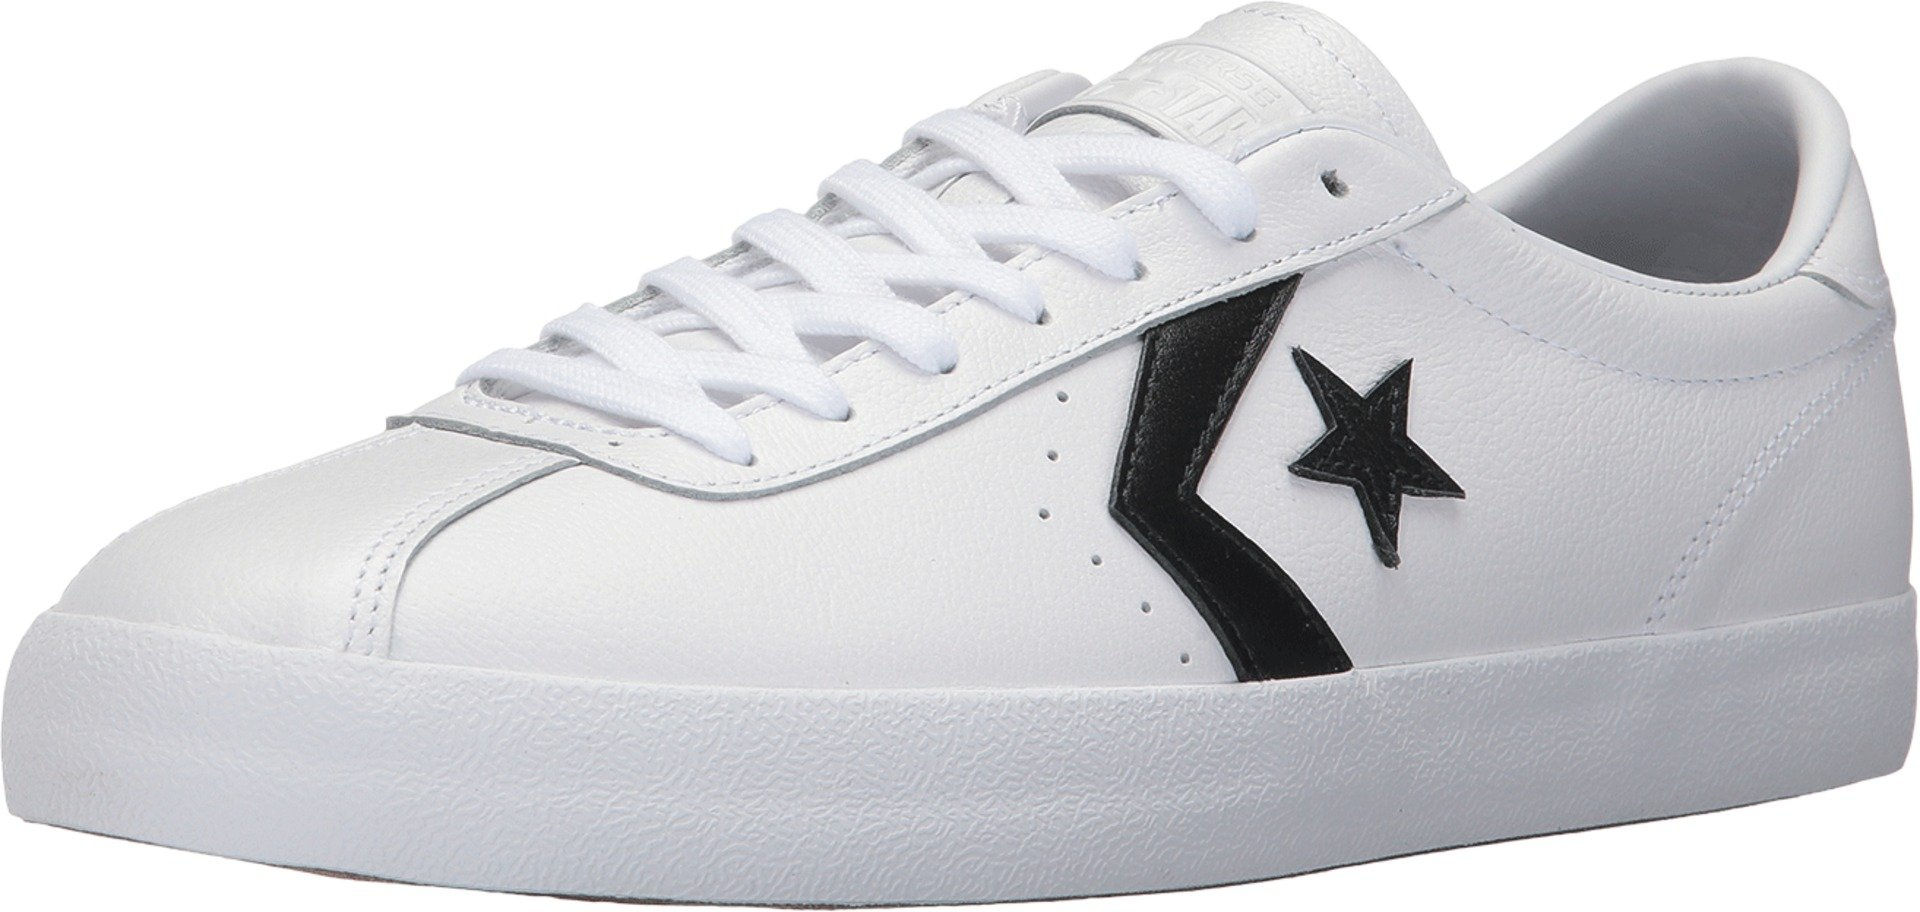 Converse Unisex Breakpoint Oxford, Optical White, 12